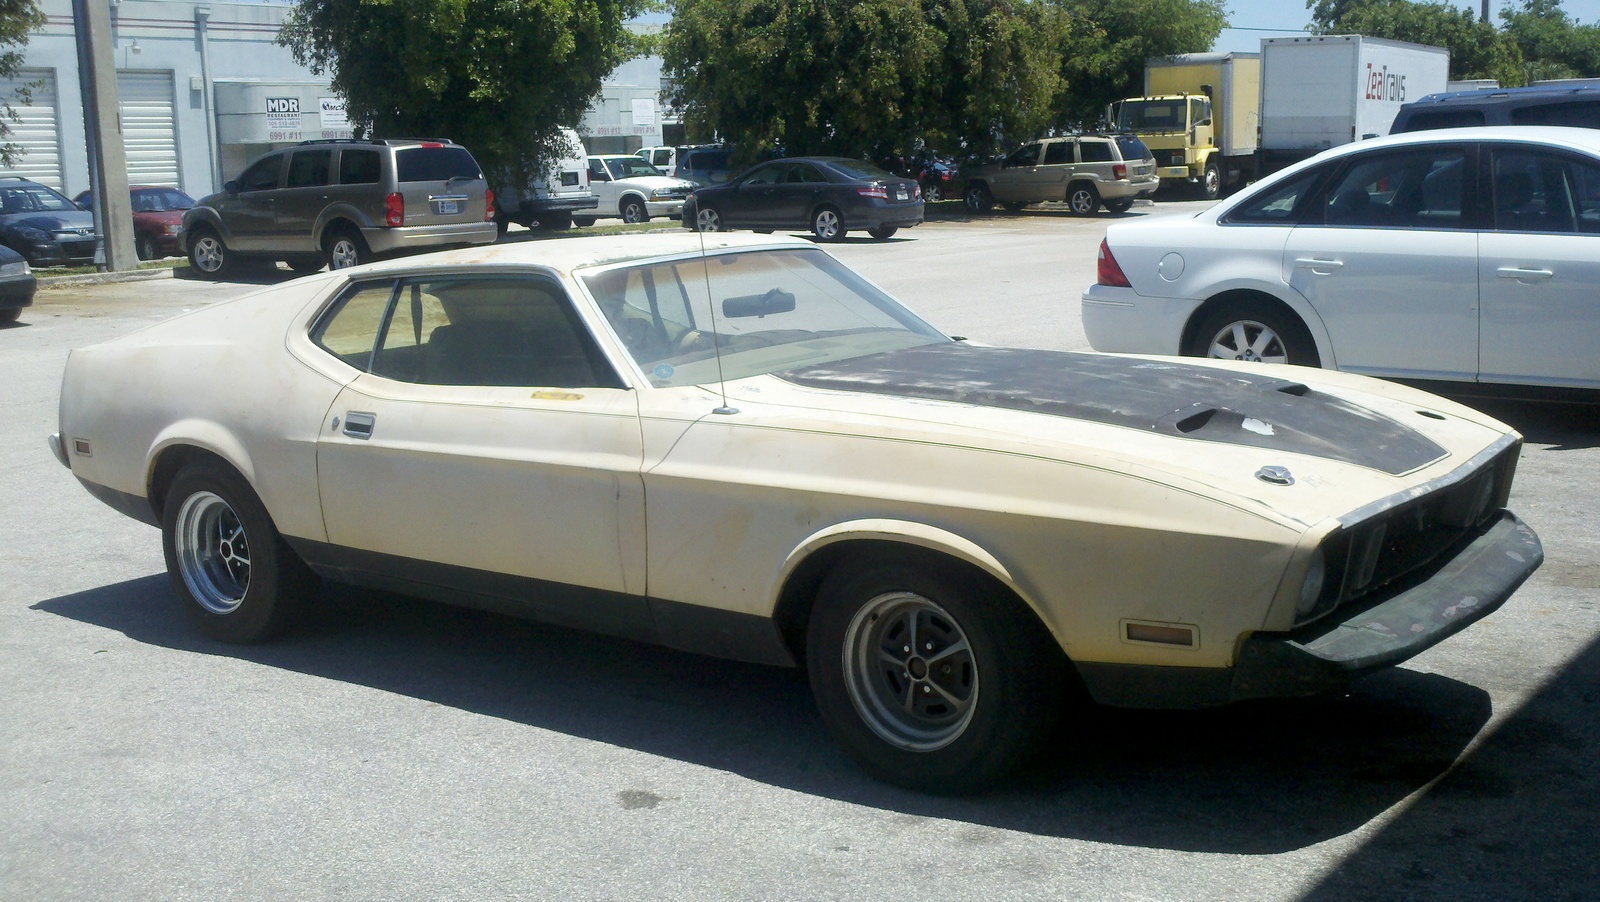 Picture of 1973 ford mustang mach 1 exterior